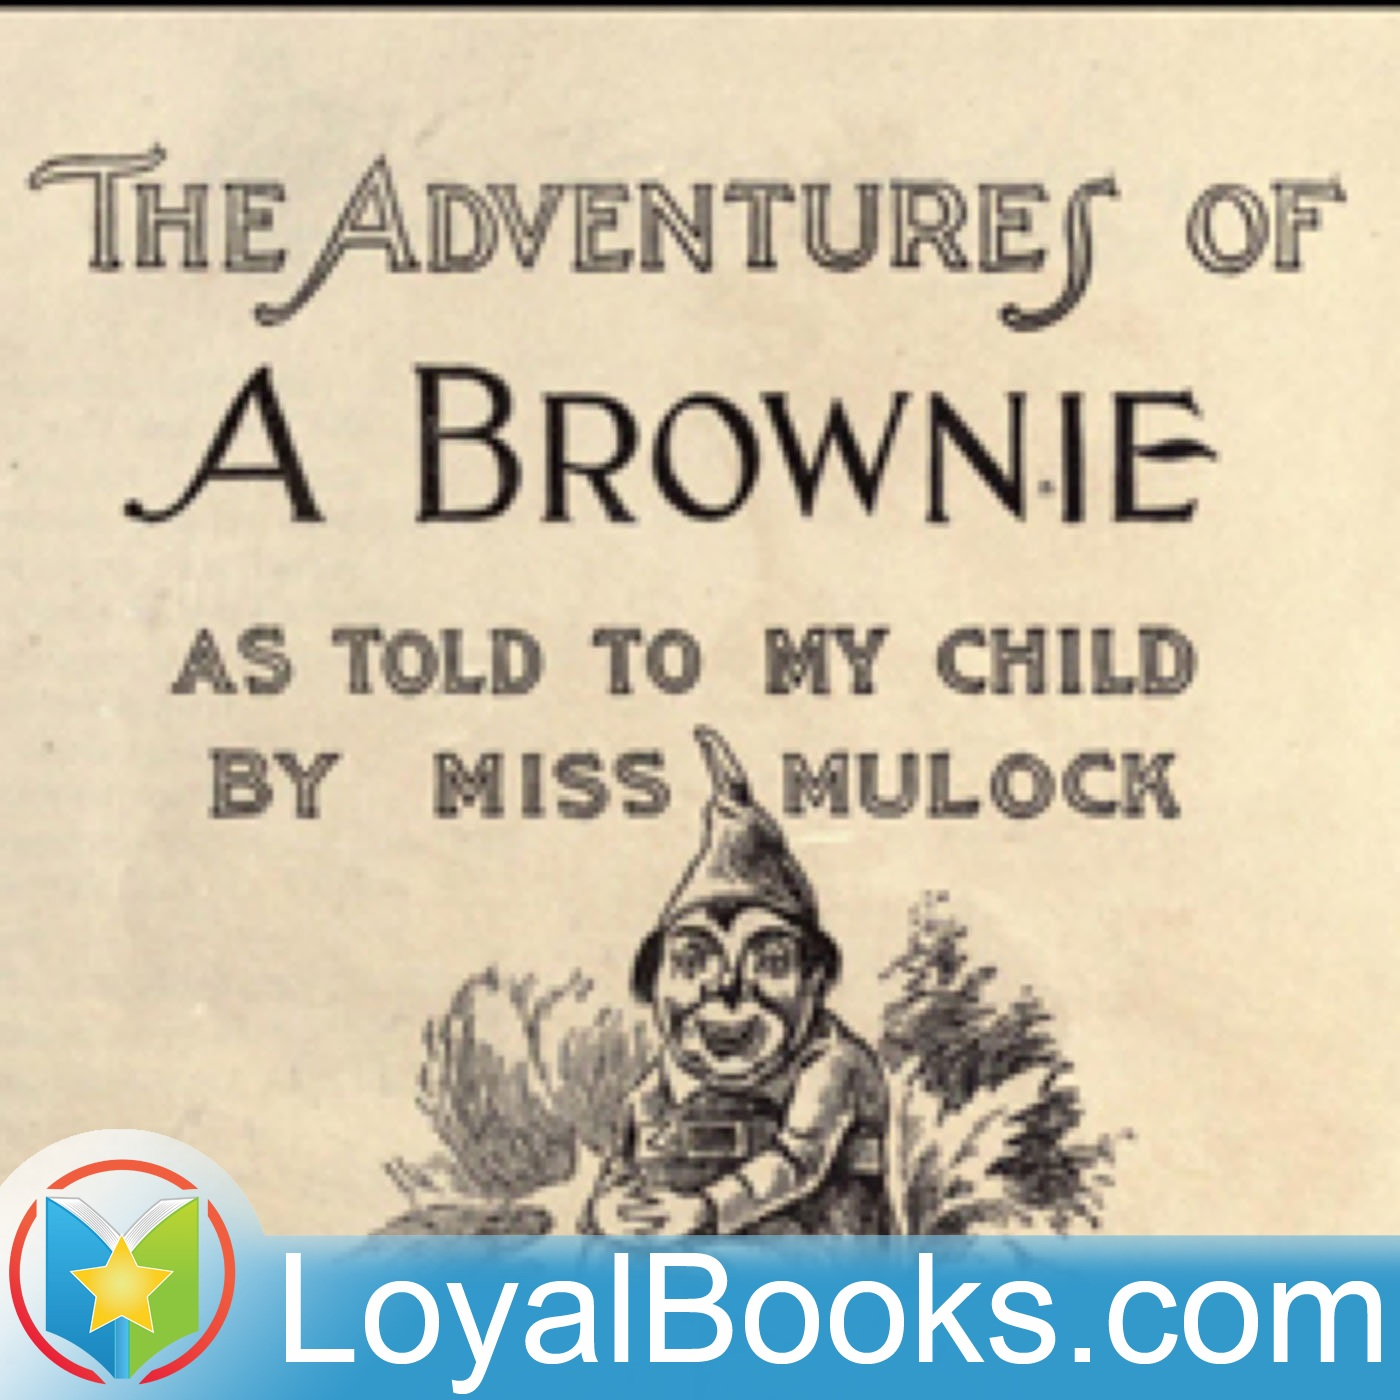 <![CDATA[Adventures of a Brownie as Told to My Child by Miss Mulock]]>